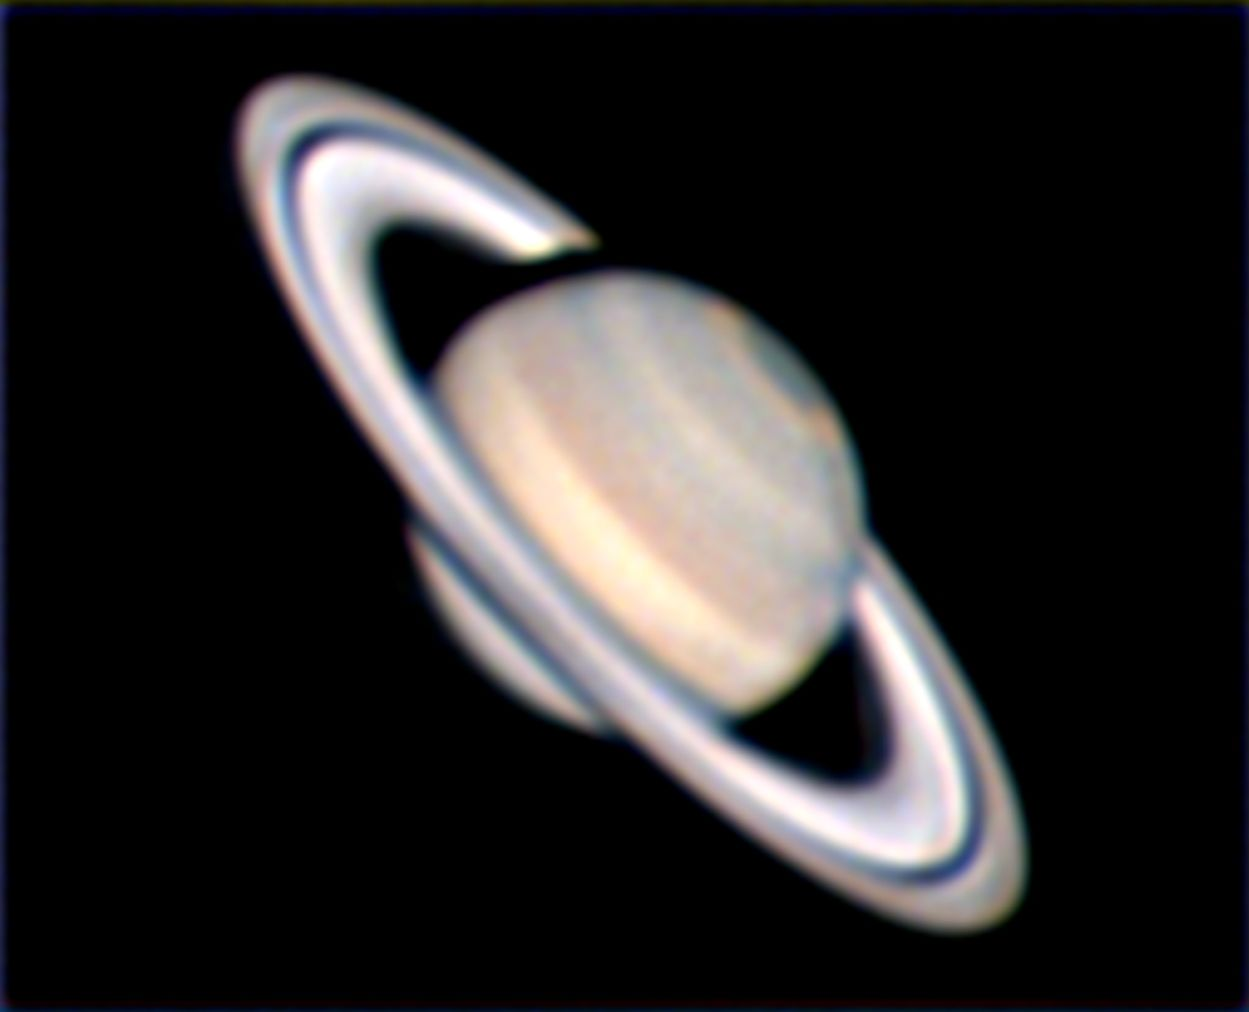 Saturn 7-14-13 at Orion Store